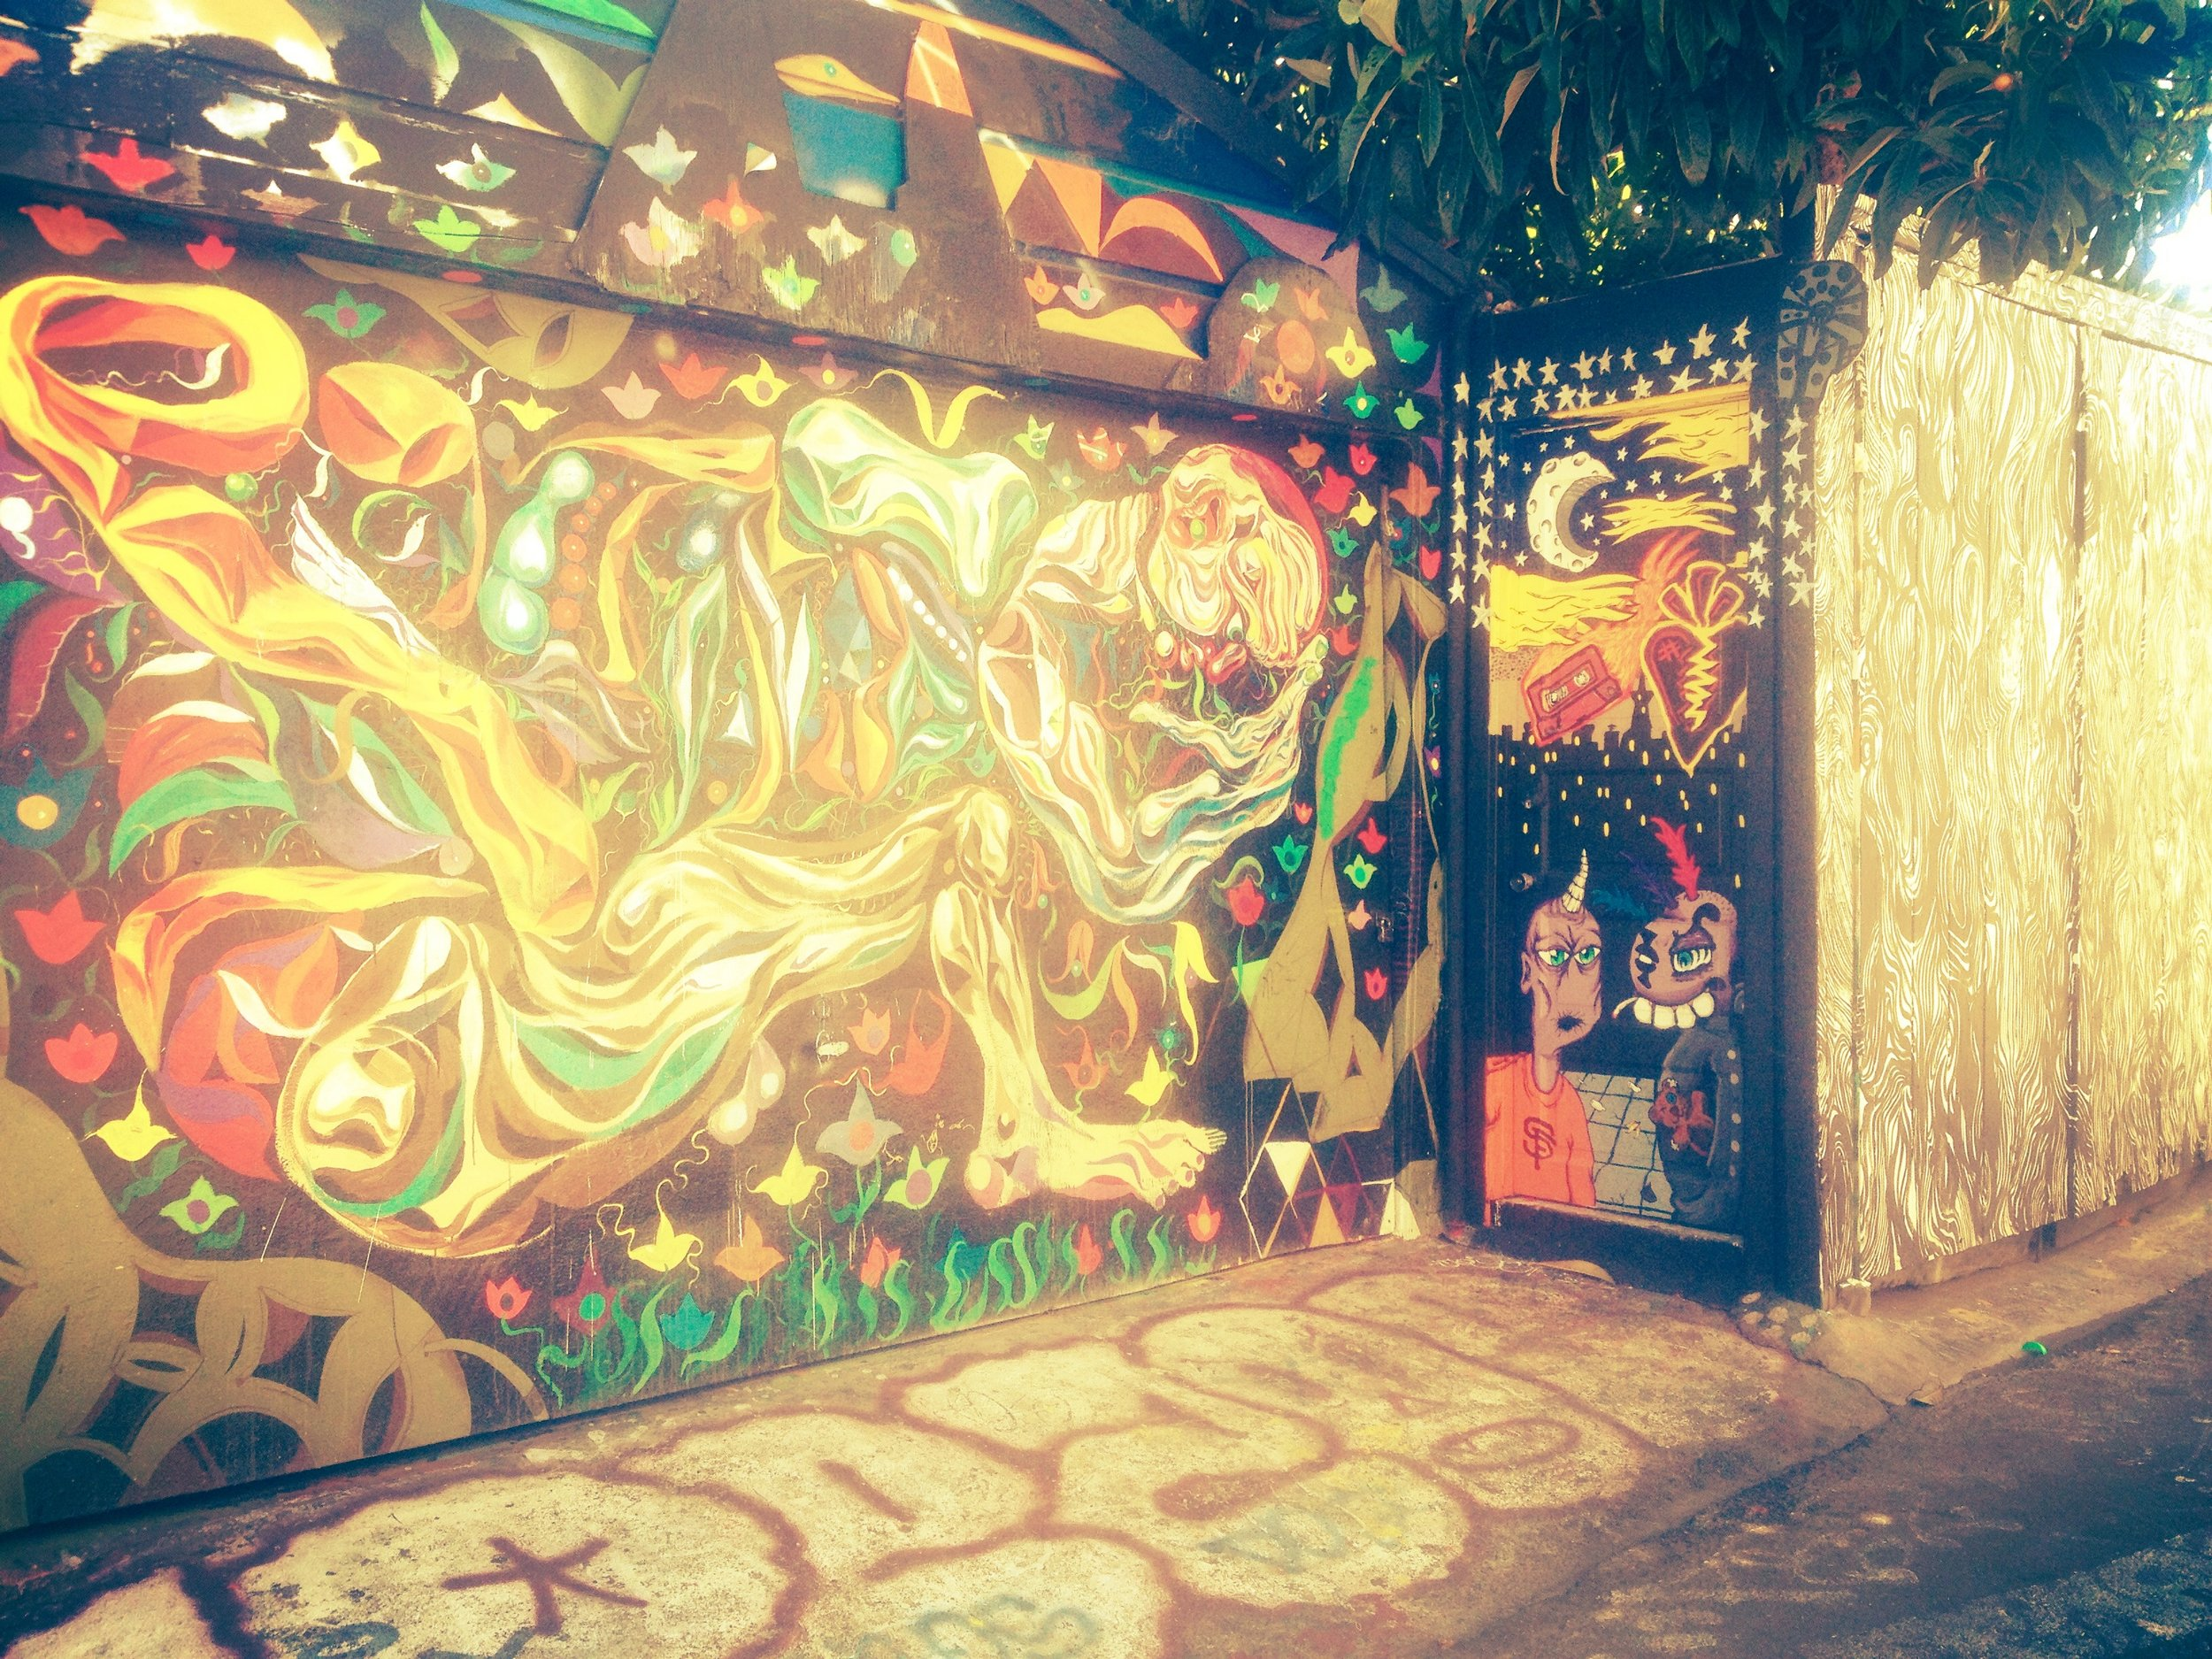 A little side street alley way art in the Mission